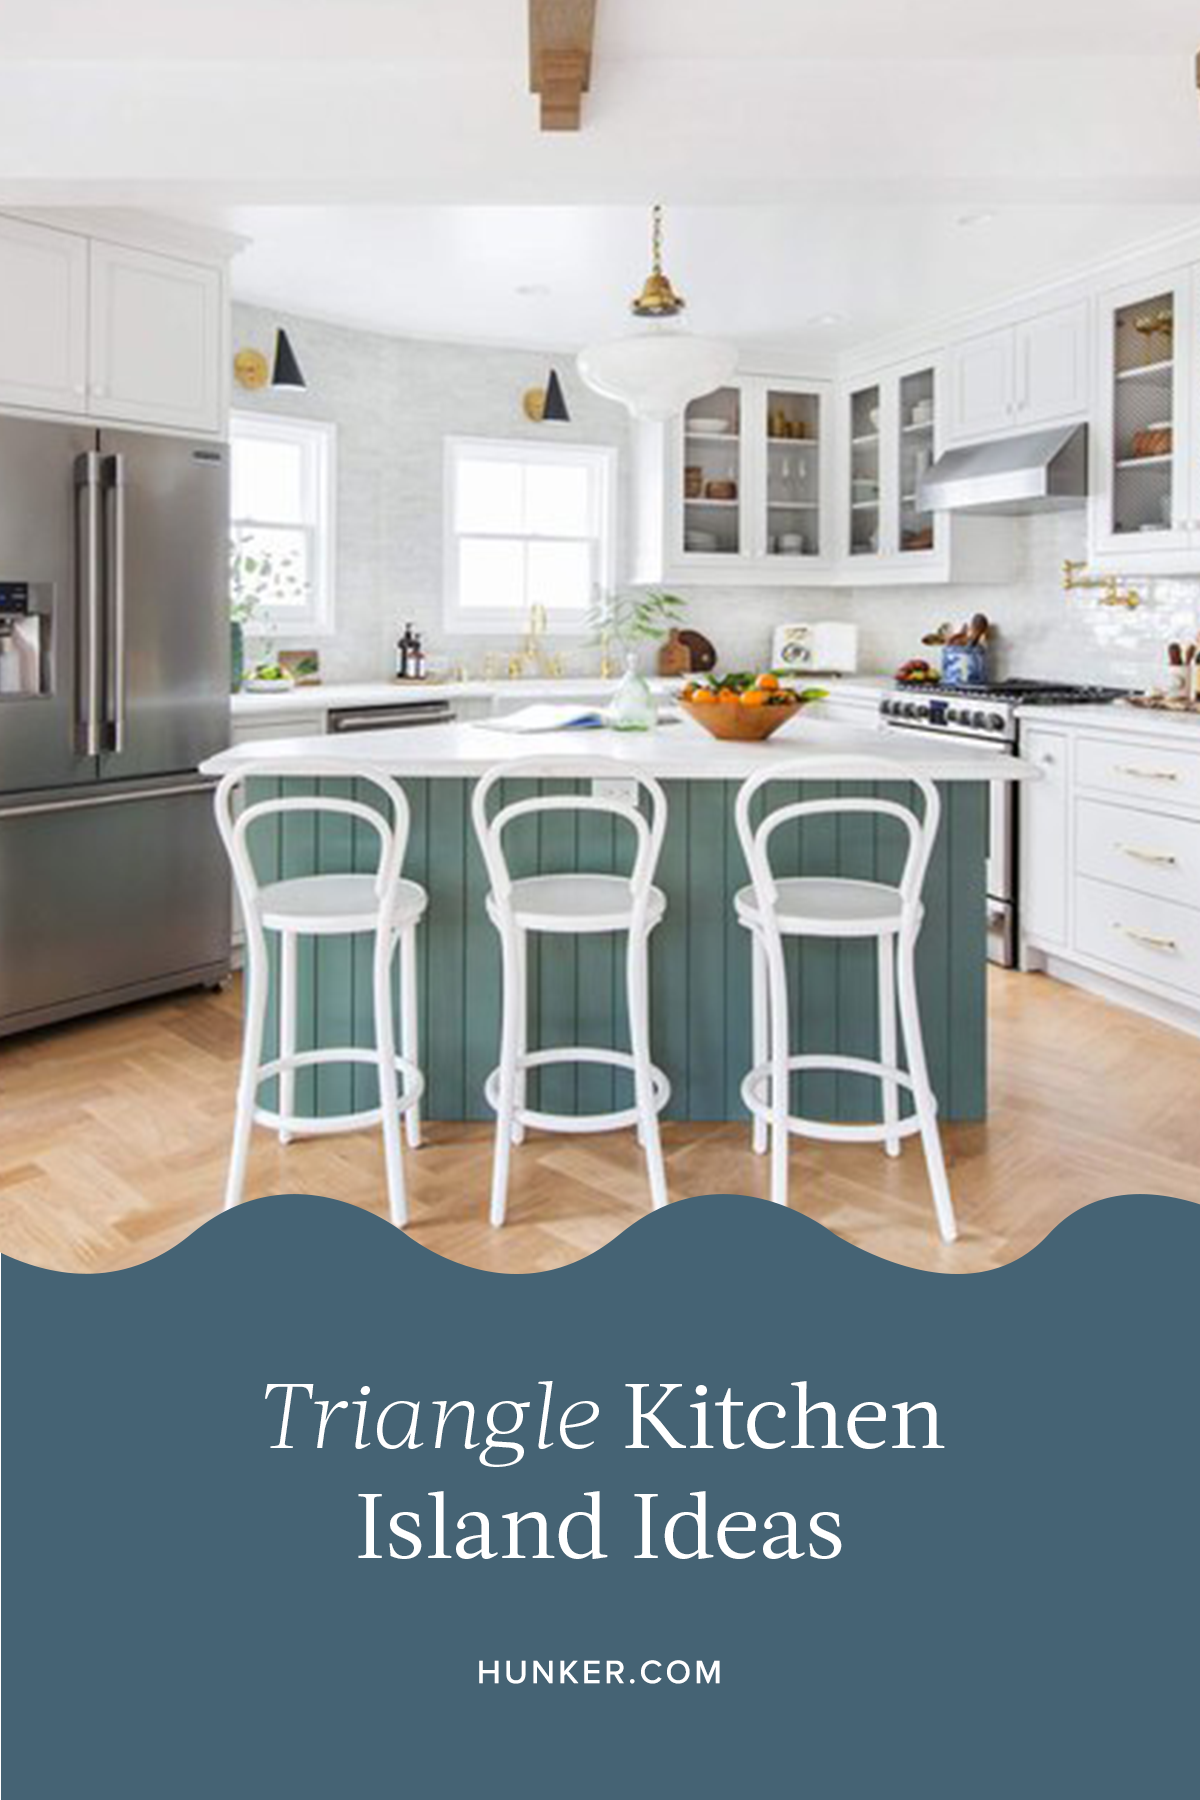 A Triangle Kitchen Island Is The Key To Your Dream Cook Space Hunker In 2020 Updated Kitchen Gorgeous Kitchens White Cabinetry